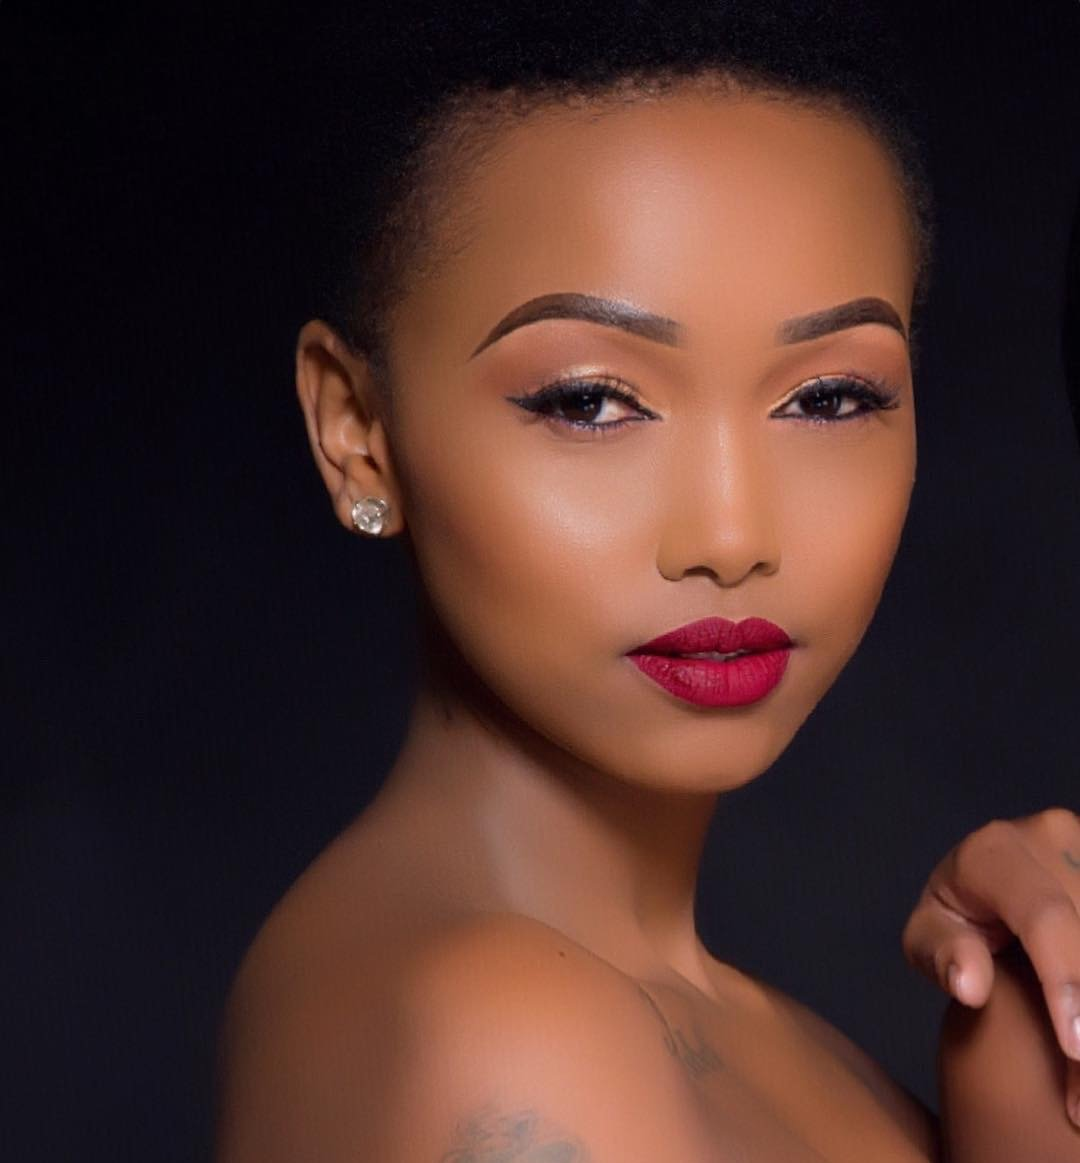 """Watu wakienda Canaan, mimi naenda Gatundu"" Huddah publicly eyes Uhuru Kenyatta hoping to be his second wife (Details)"